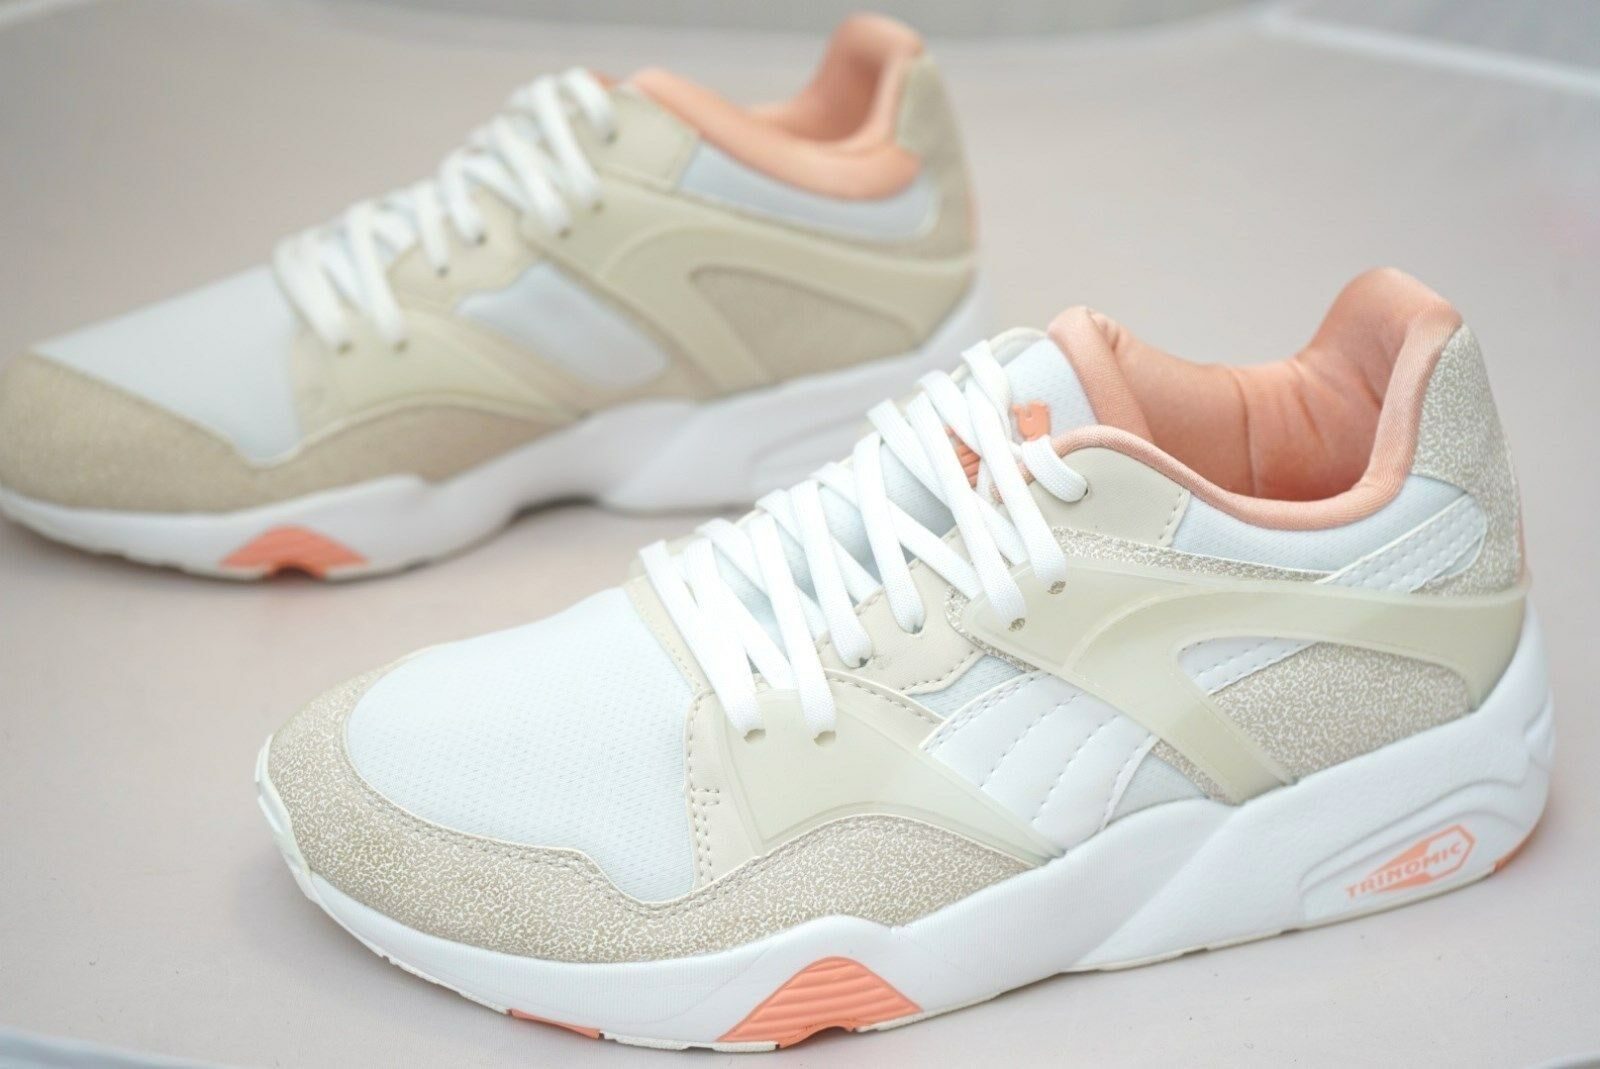 Puma Blaze Filtered Womens shoes Trainers Size UK 7   EU 40.5 White (MEW)